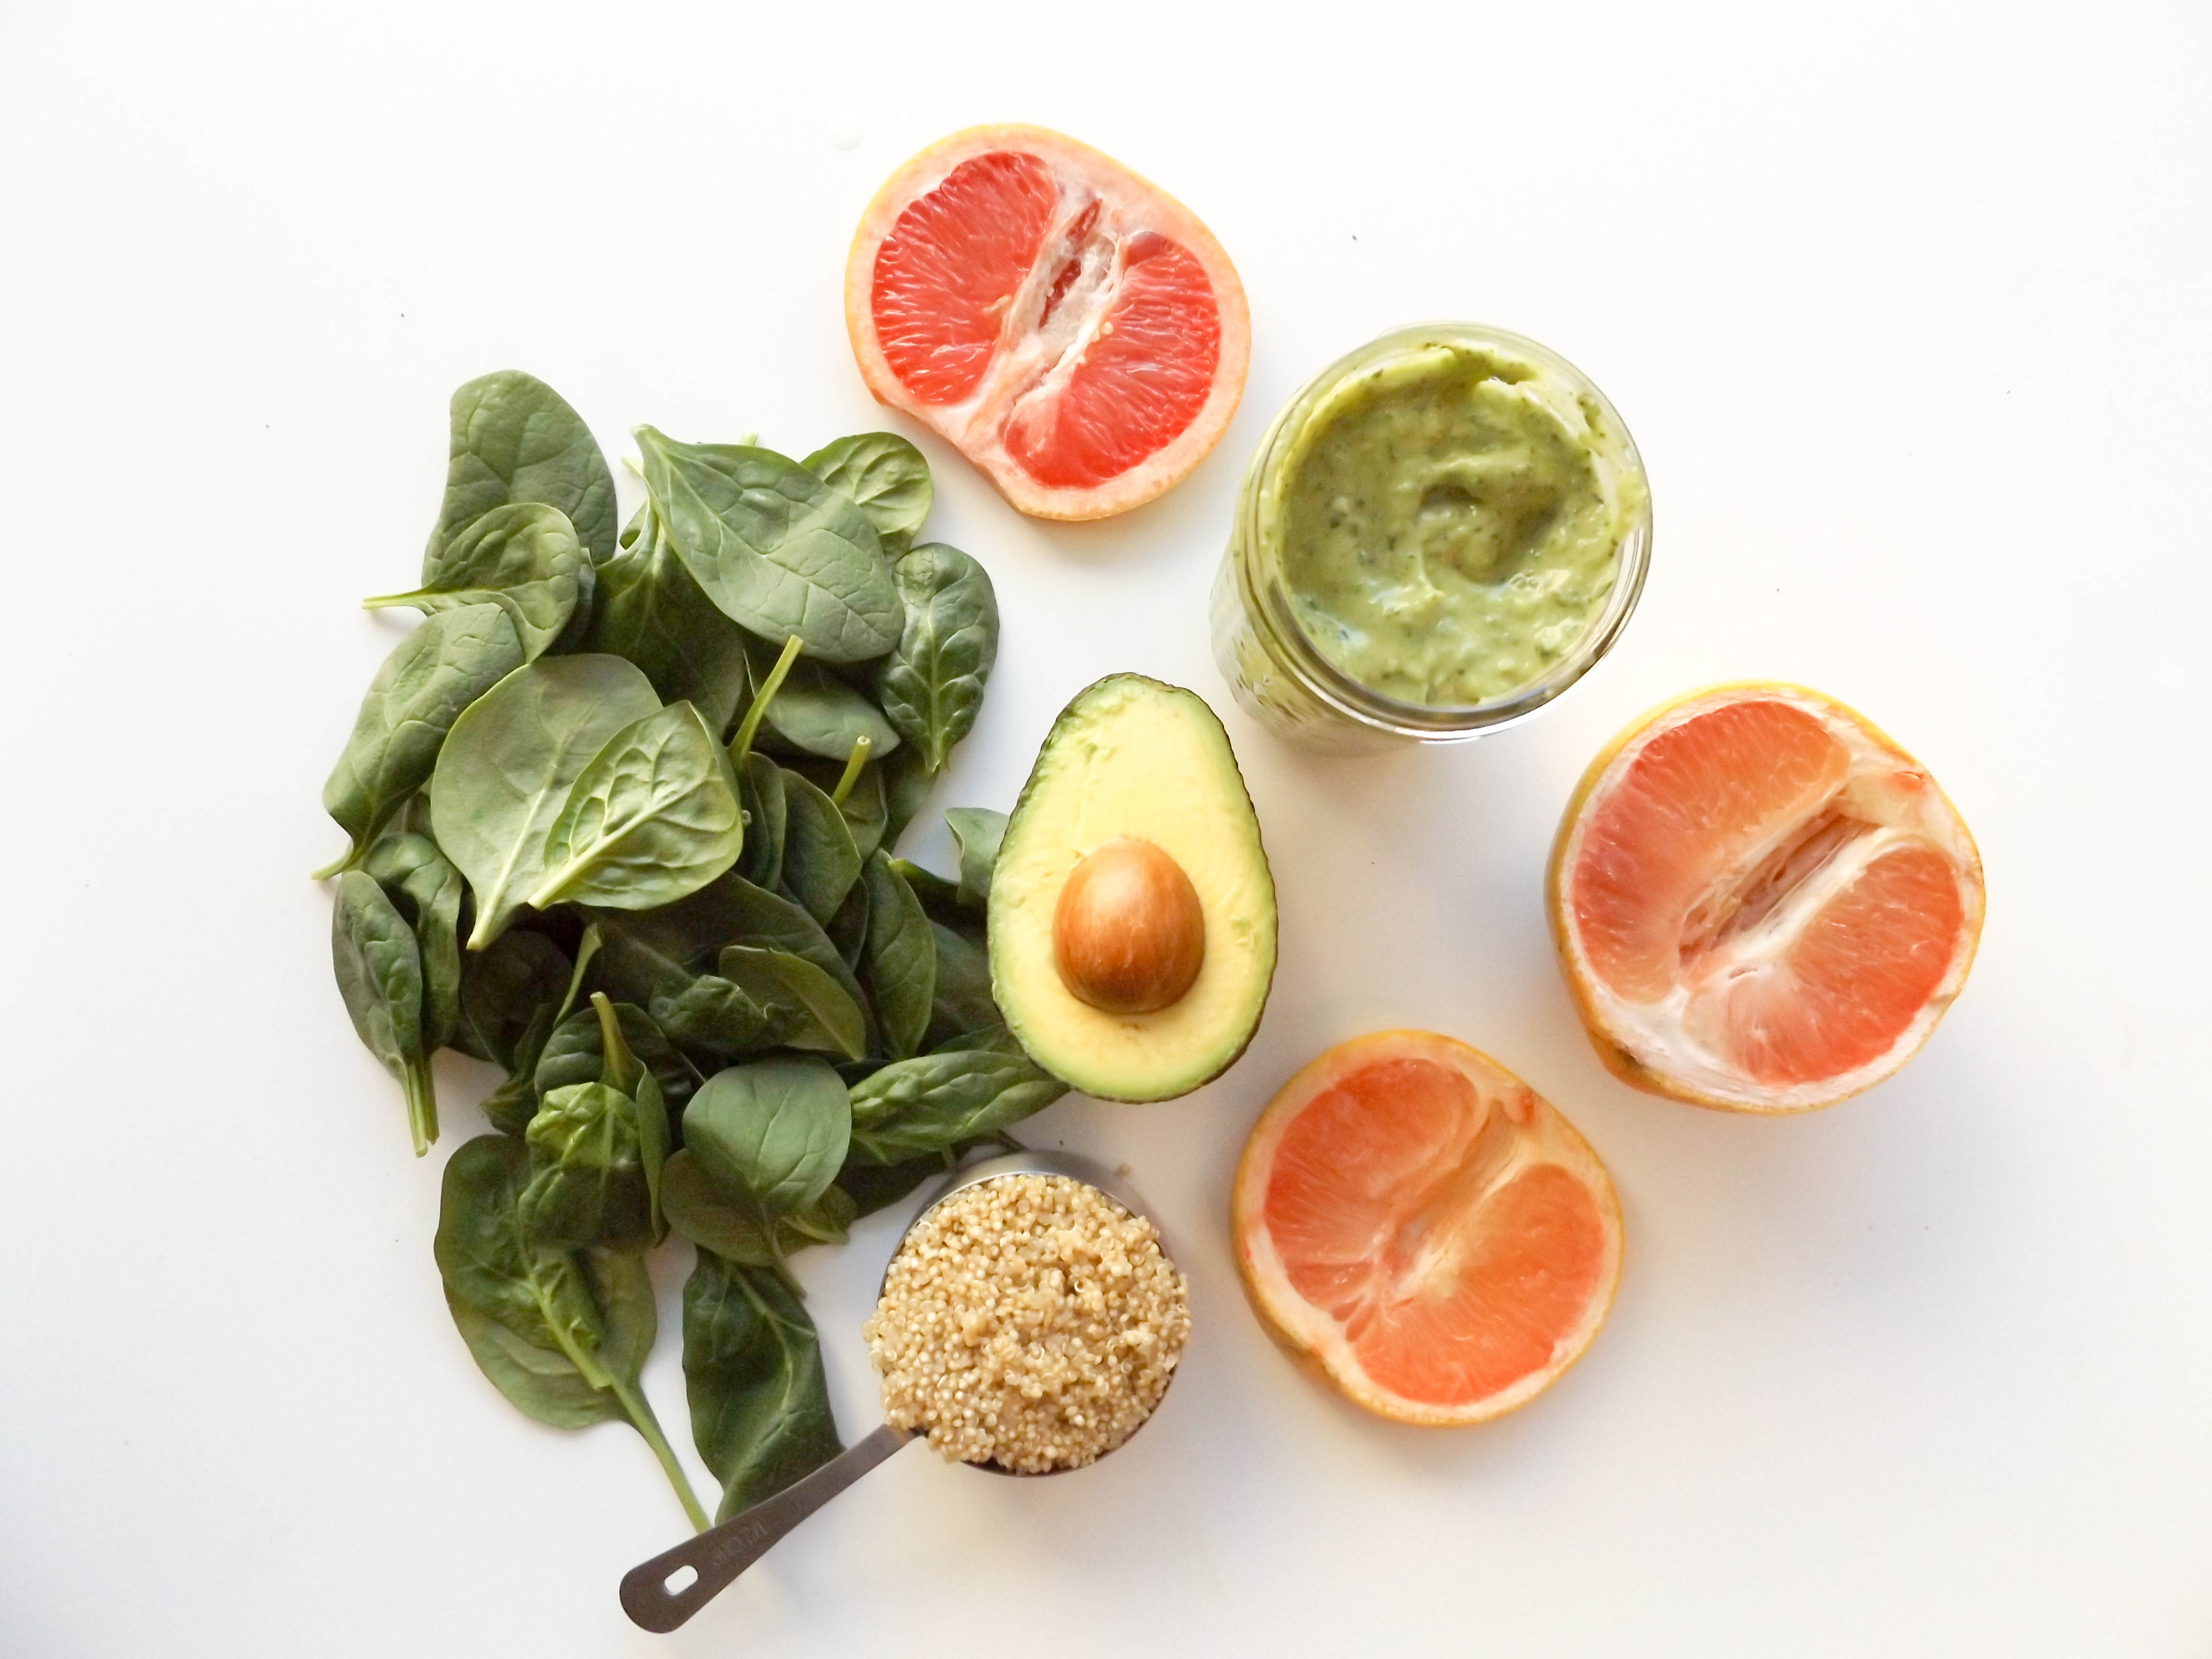 Grapefruit, Avocado, Quinoa, and Spinach Salad with Avocado Green Goddess Dressing